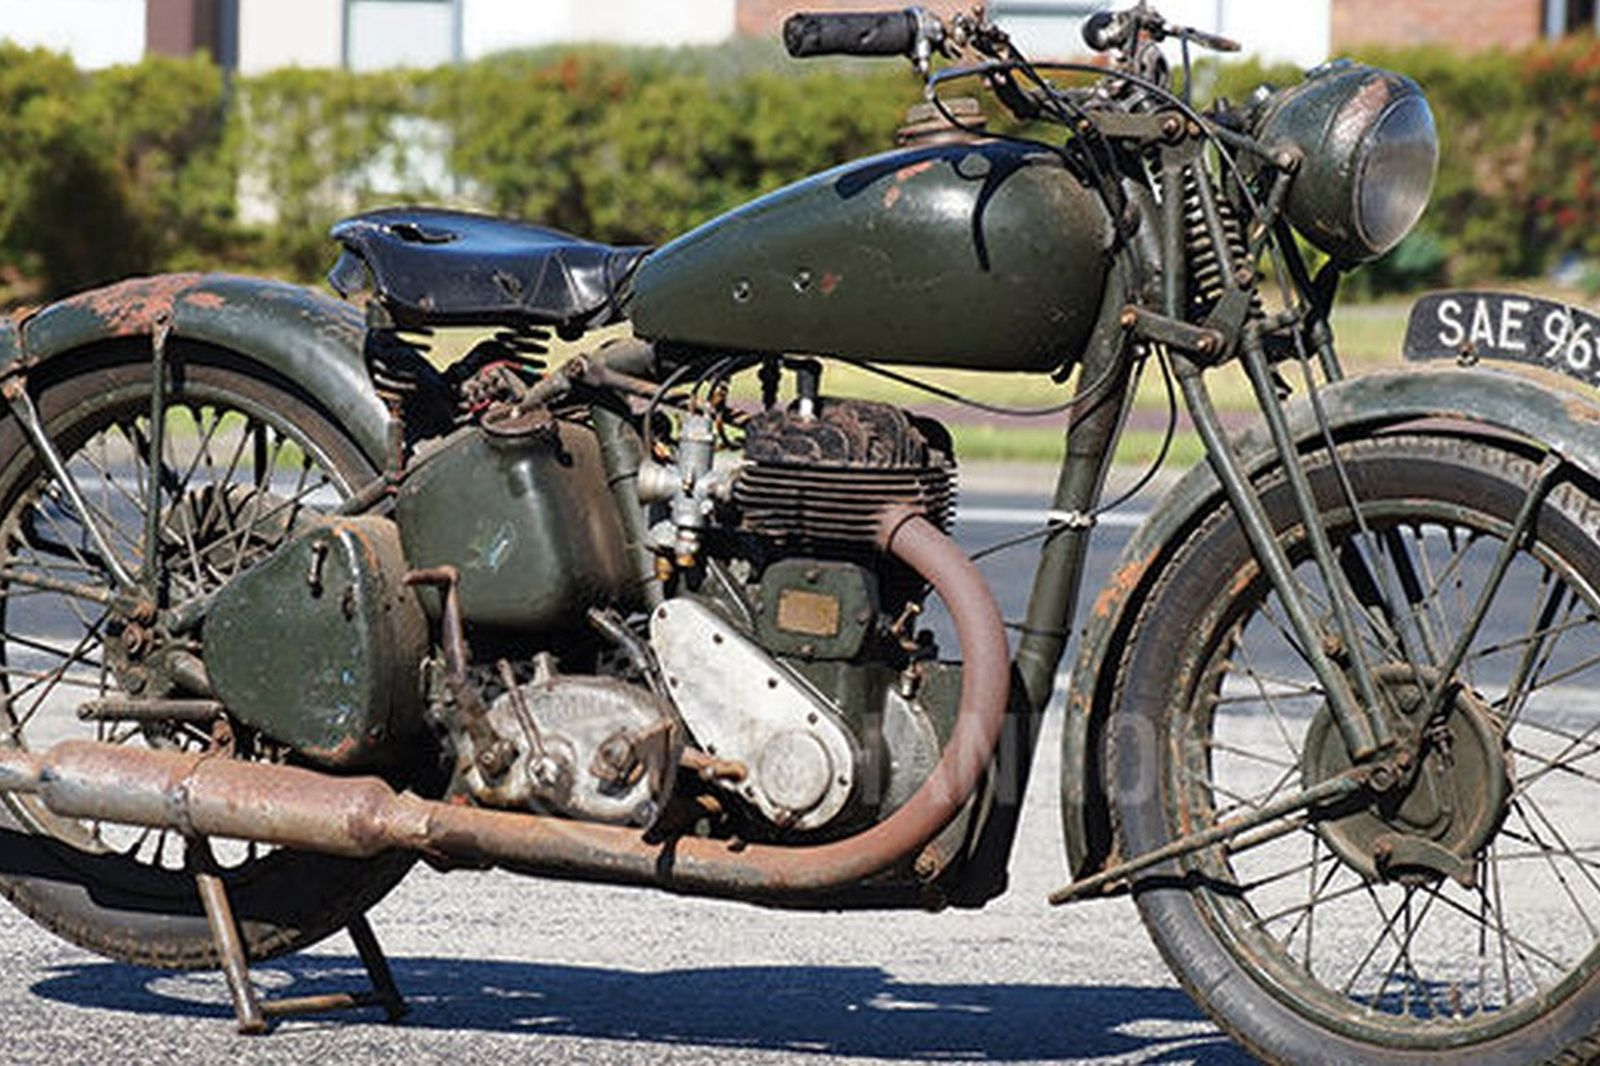 Sold bsa m20 500cc motorcycle auctions lot 26 shannons for Motor vehicle open on saturday